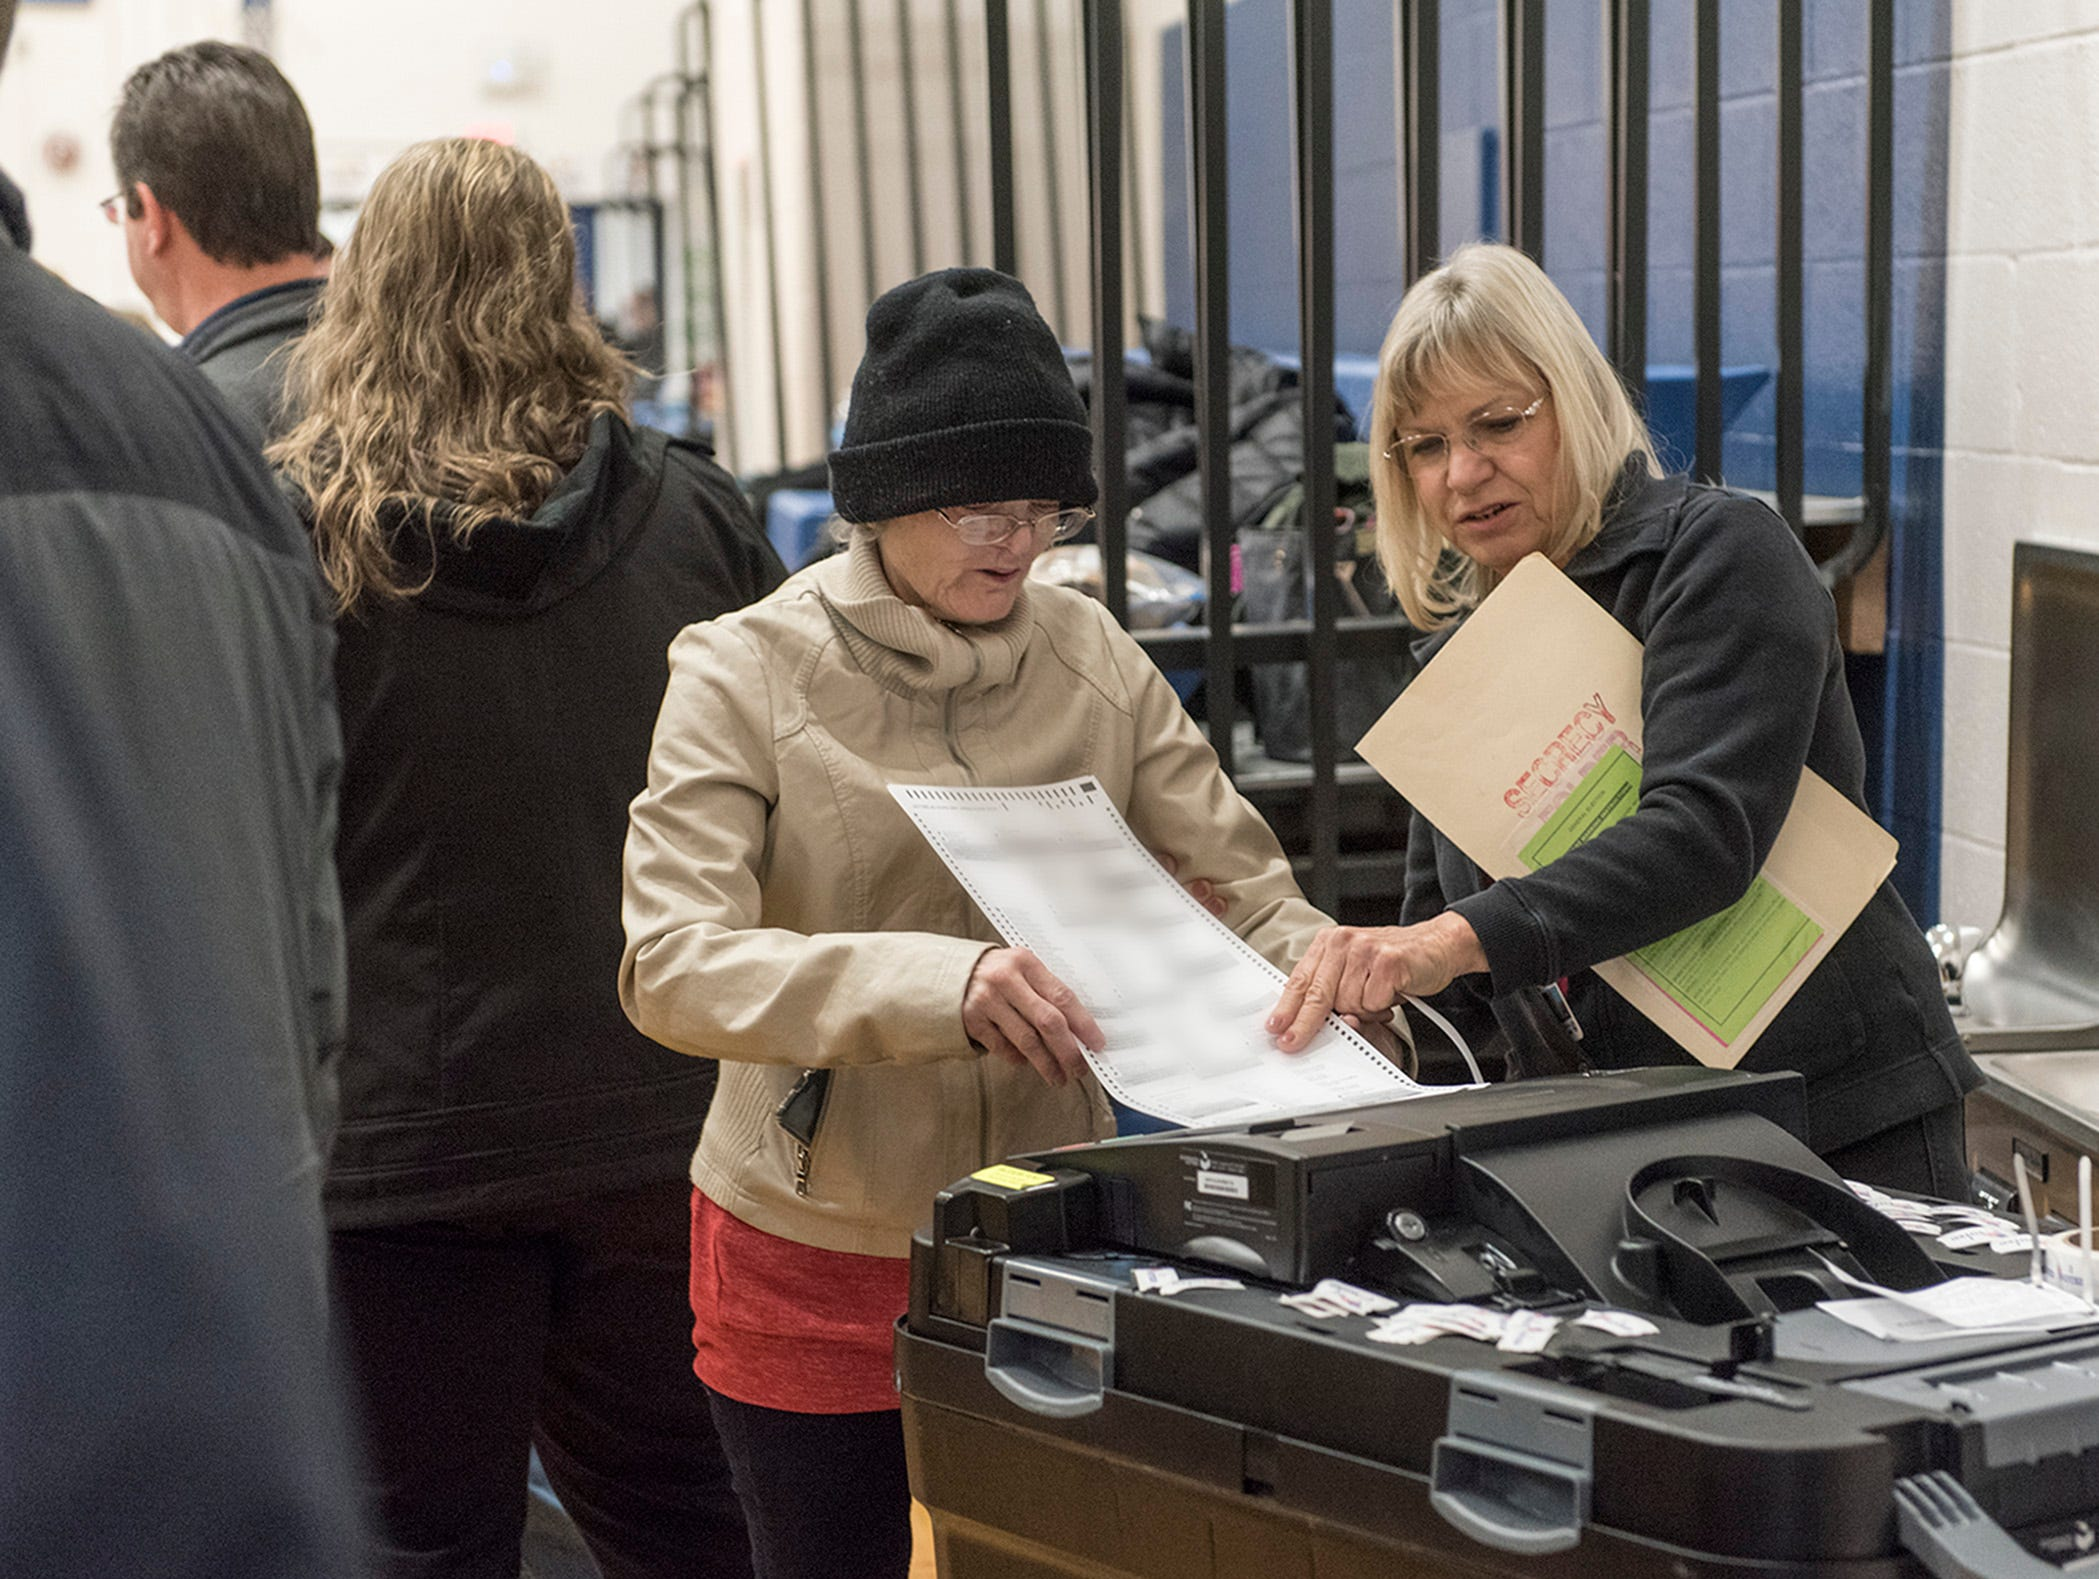 A voter feeds her ballot into a tabulating machine, with the help of an elections worker, at the Riley Upper Elementary School polling place in Livonia on Nov. 6. Problems with vote-counting machinery caused headaches and counting delays throughout Wayne County.